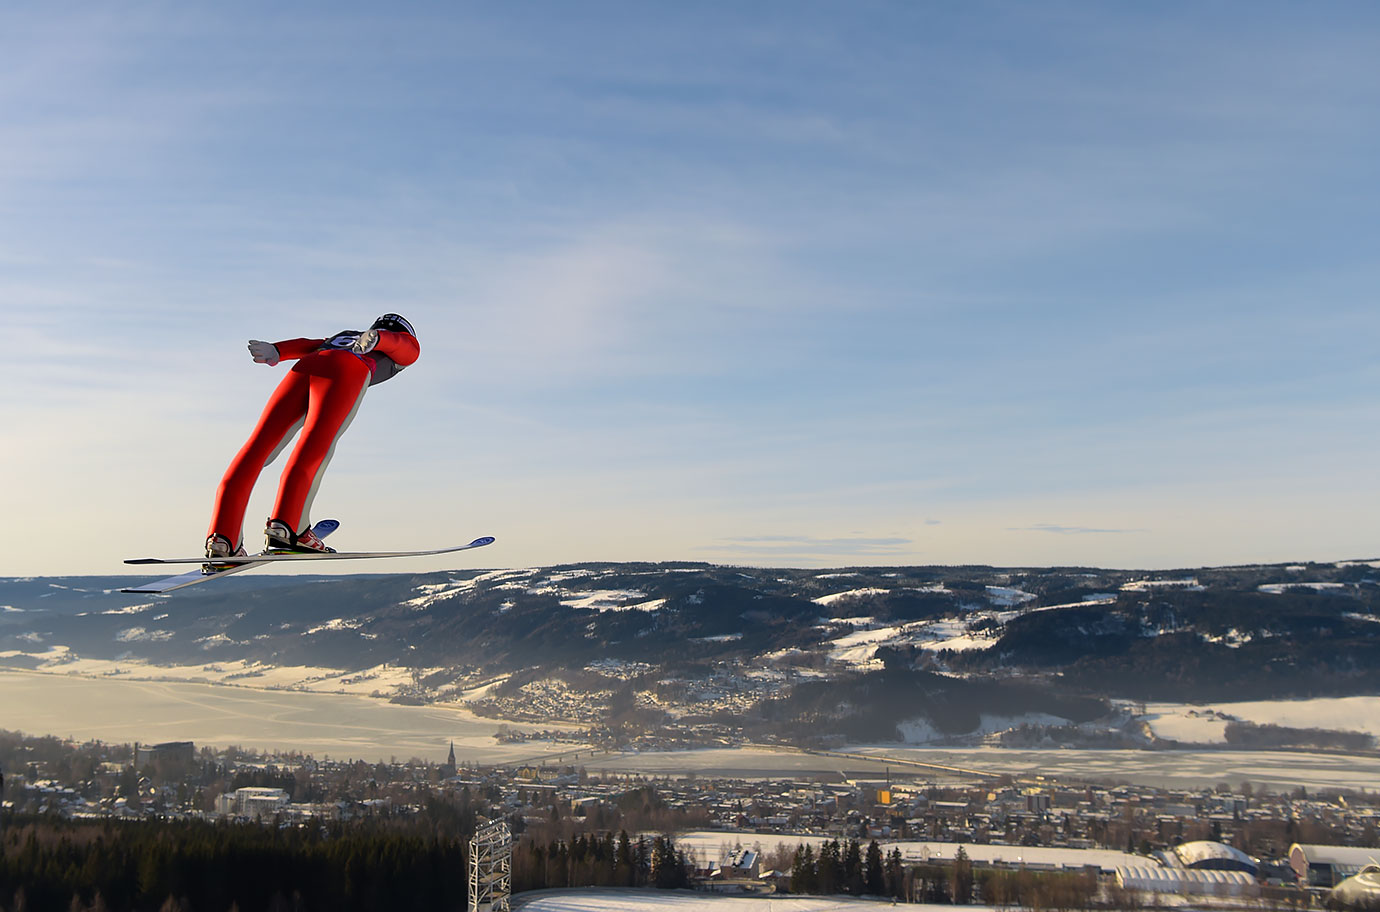 Einar Luraas Oftebro (NOR) flies over Lillehammer in the Nordic Combined Men's Individual Gundersen NH/5km Ski Jumping competition at Lysgardsbakkene Ski Jumping Arena on Feb. 16, 2016 during the Winter Youth Olympic Games in Lillehammer, Norway.